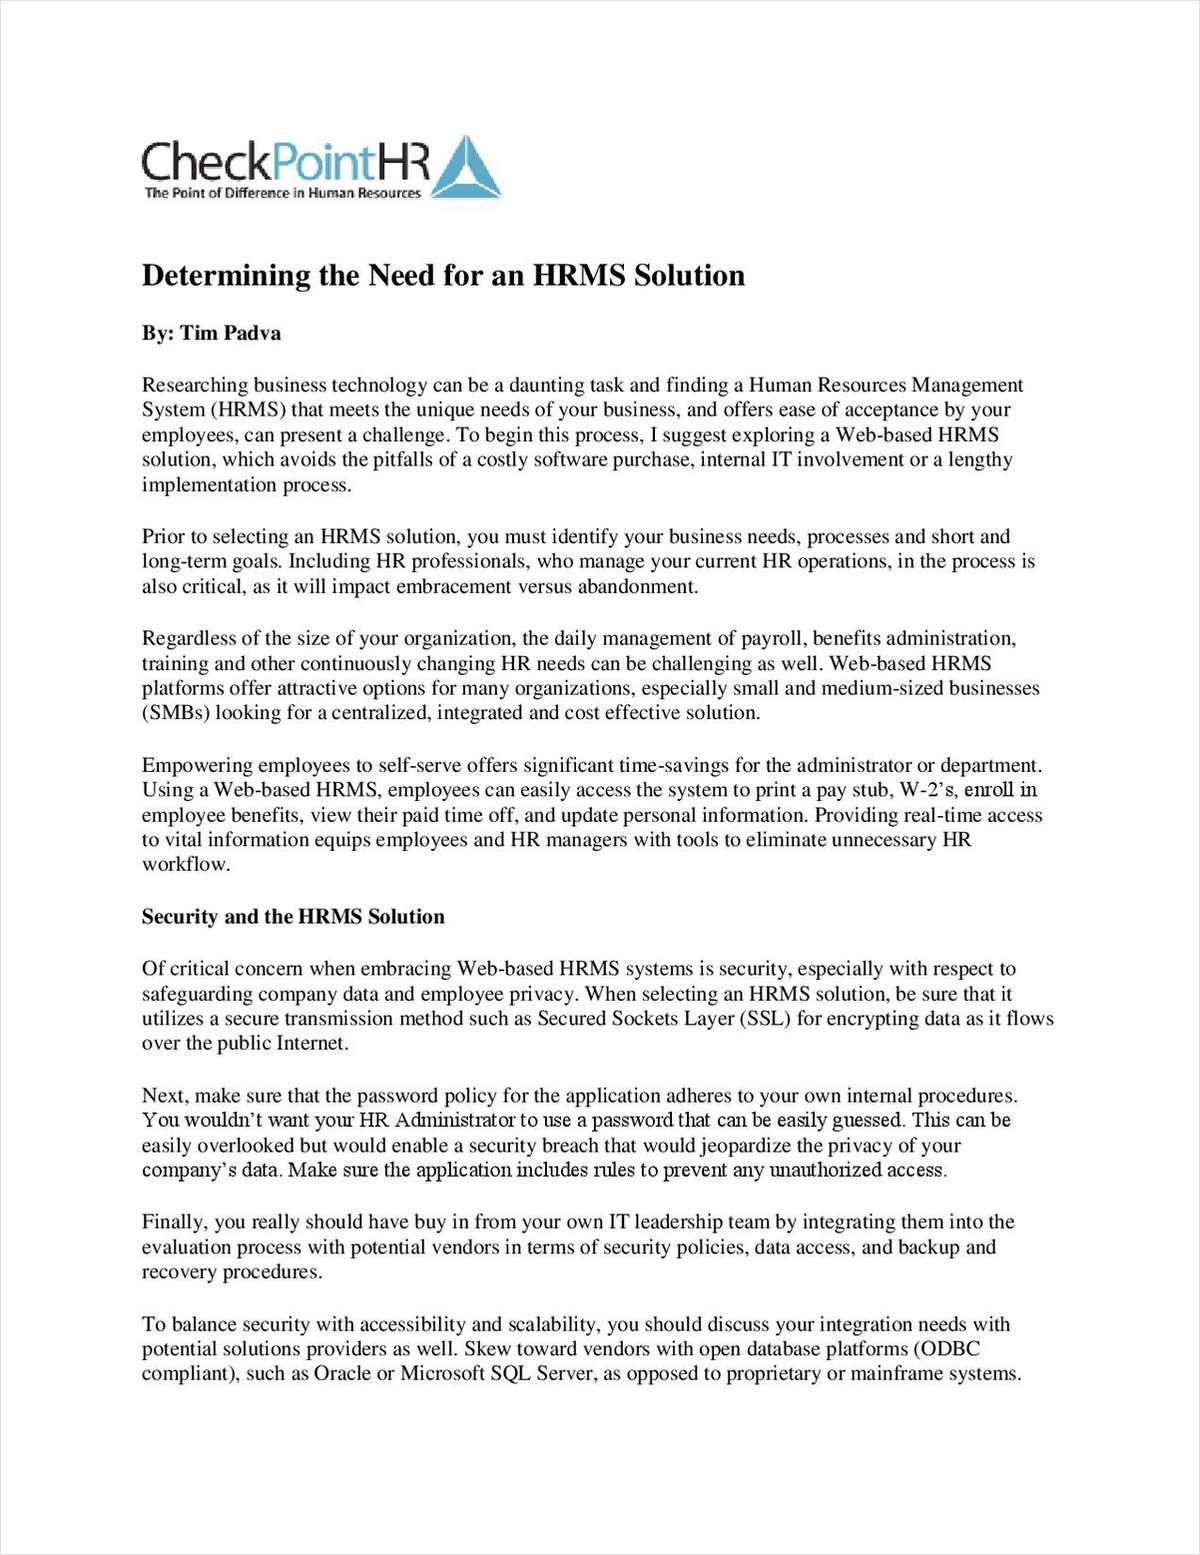 Determining the Need for an HRMS Solution